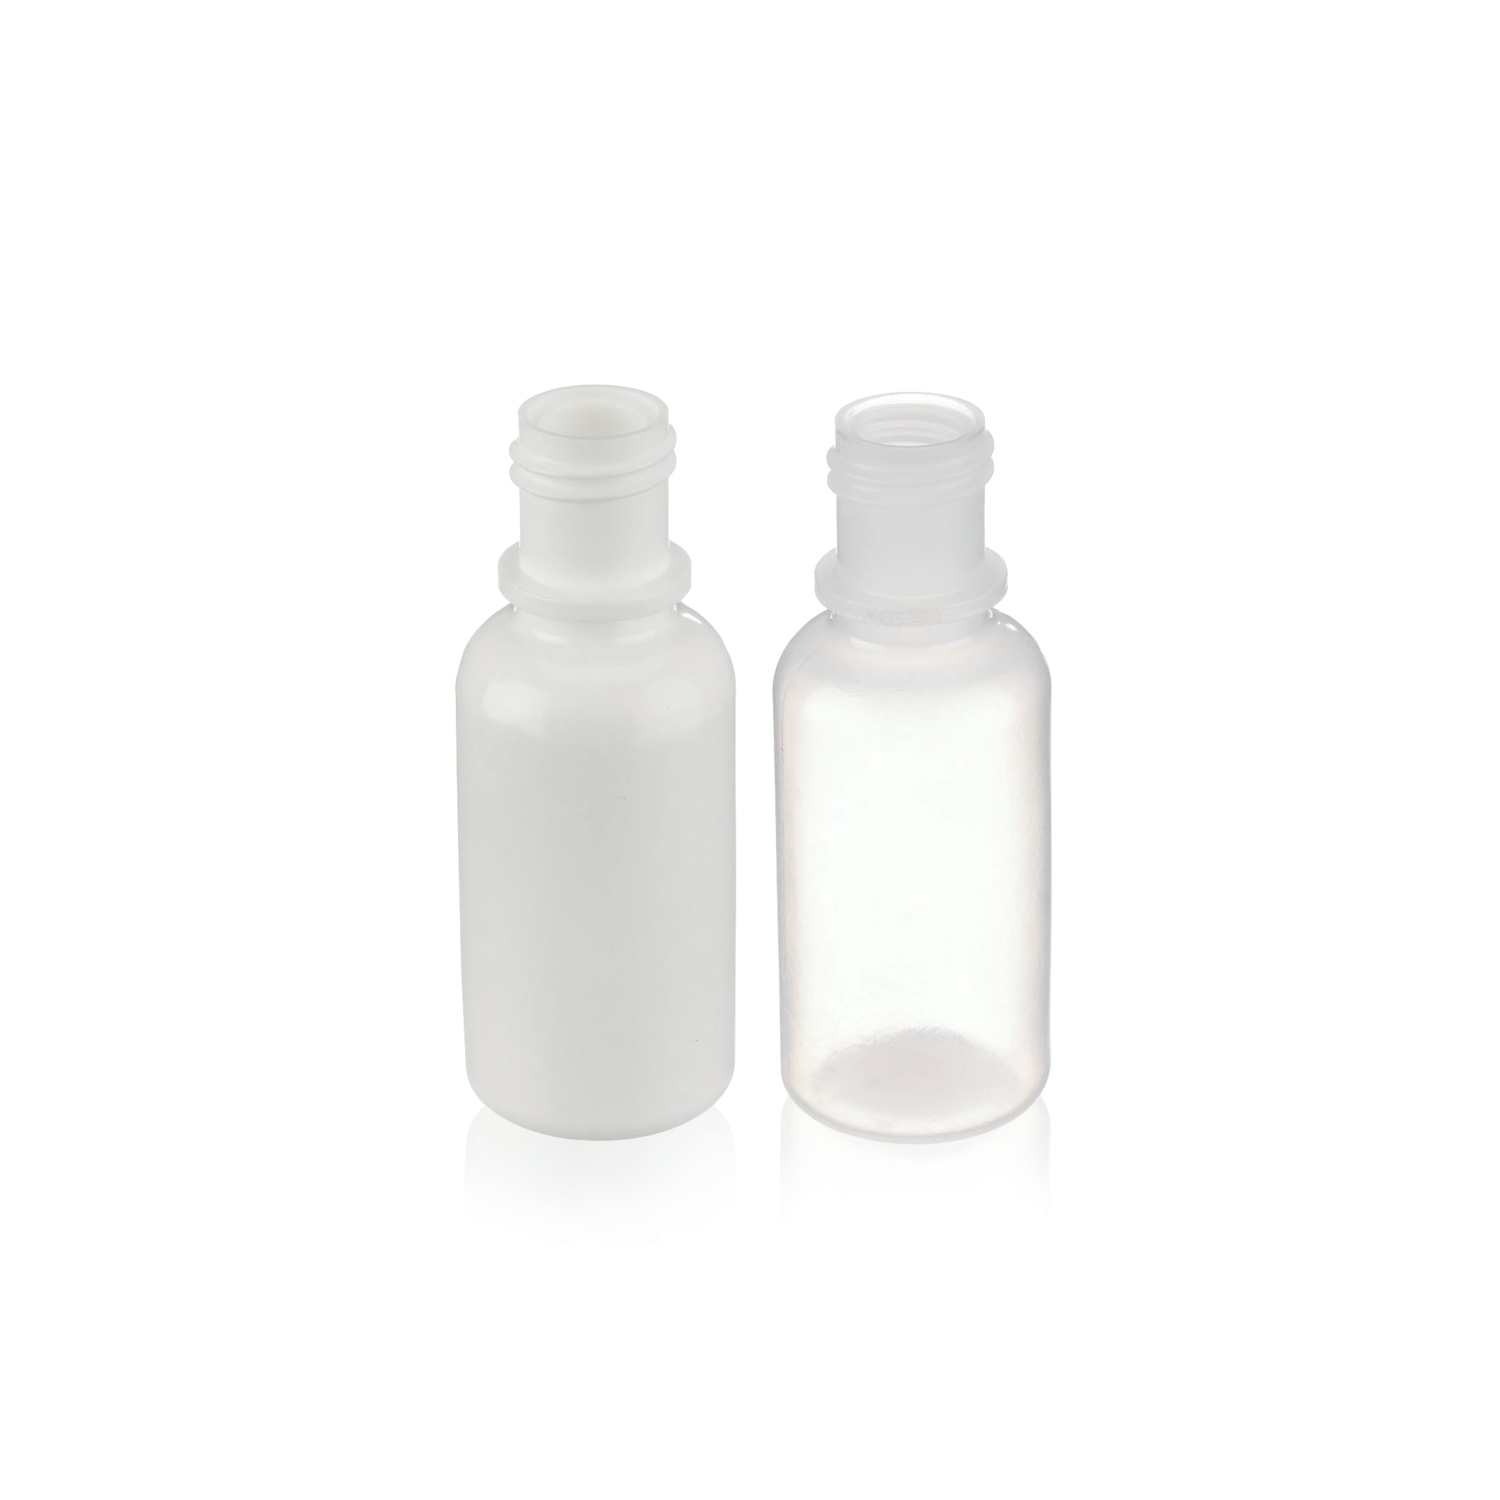 WHEATON® Plastic Dropping Bottle, 15mL, Natural, Case of 100